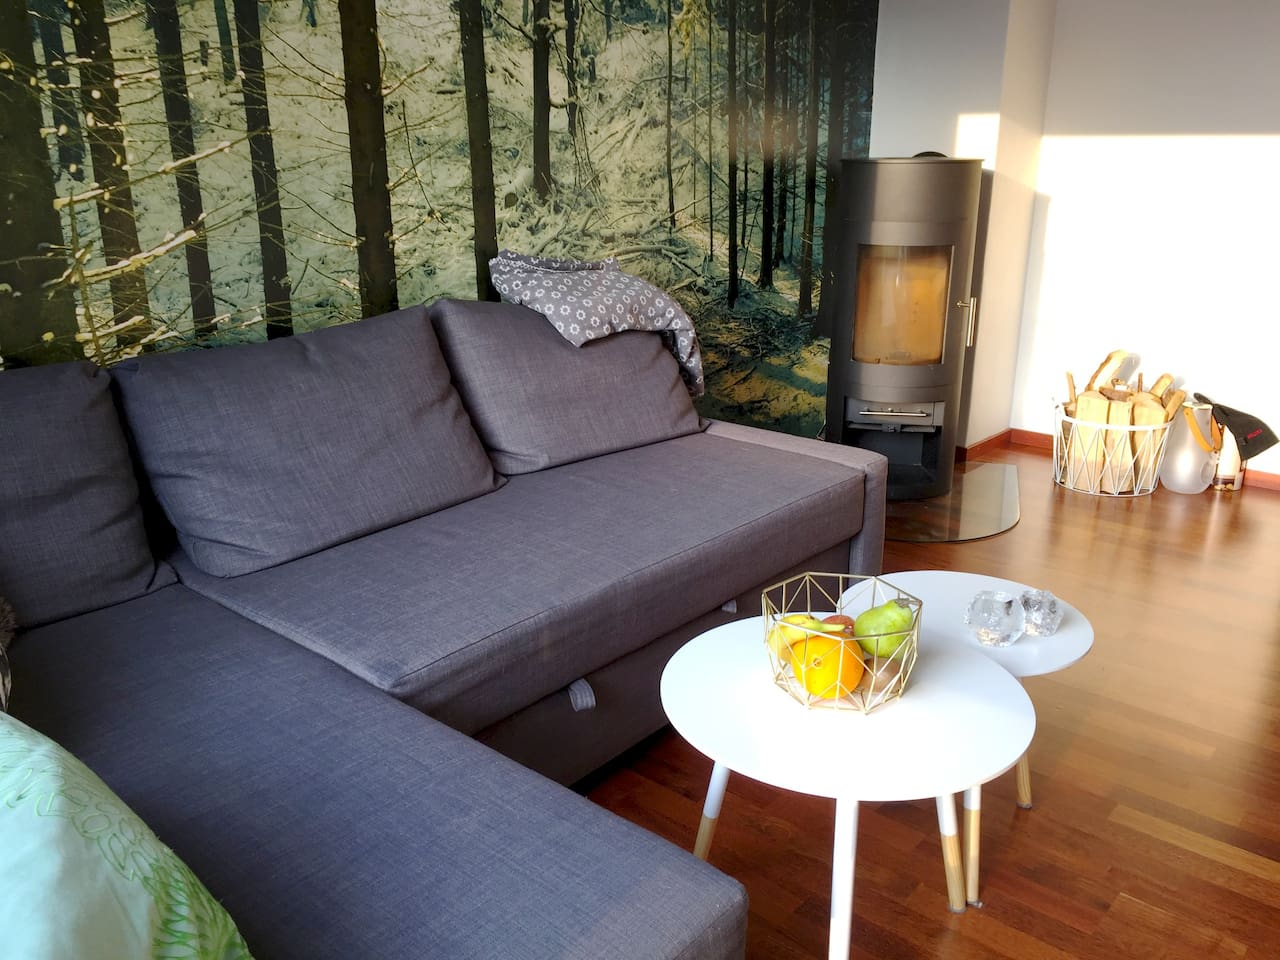 In the living room area you will find a sofabed and cosy fireplace.